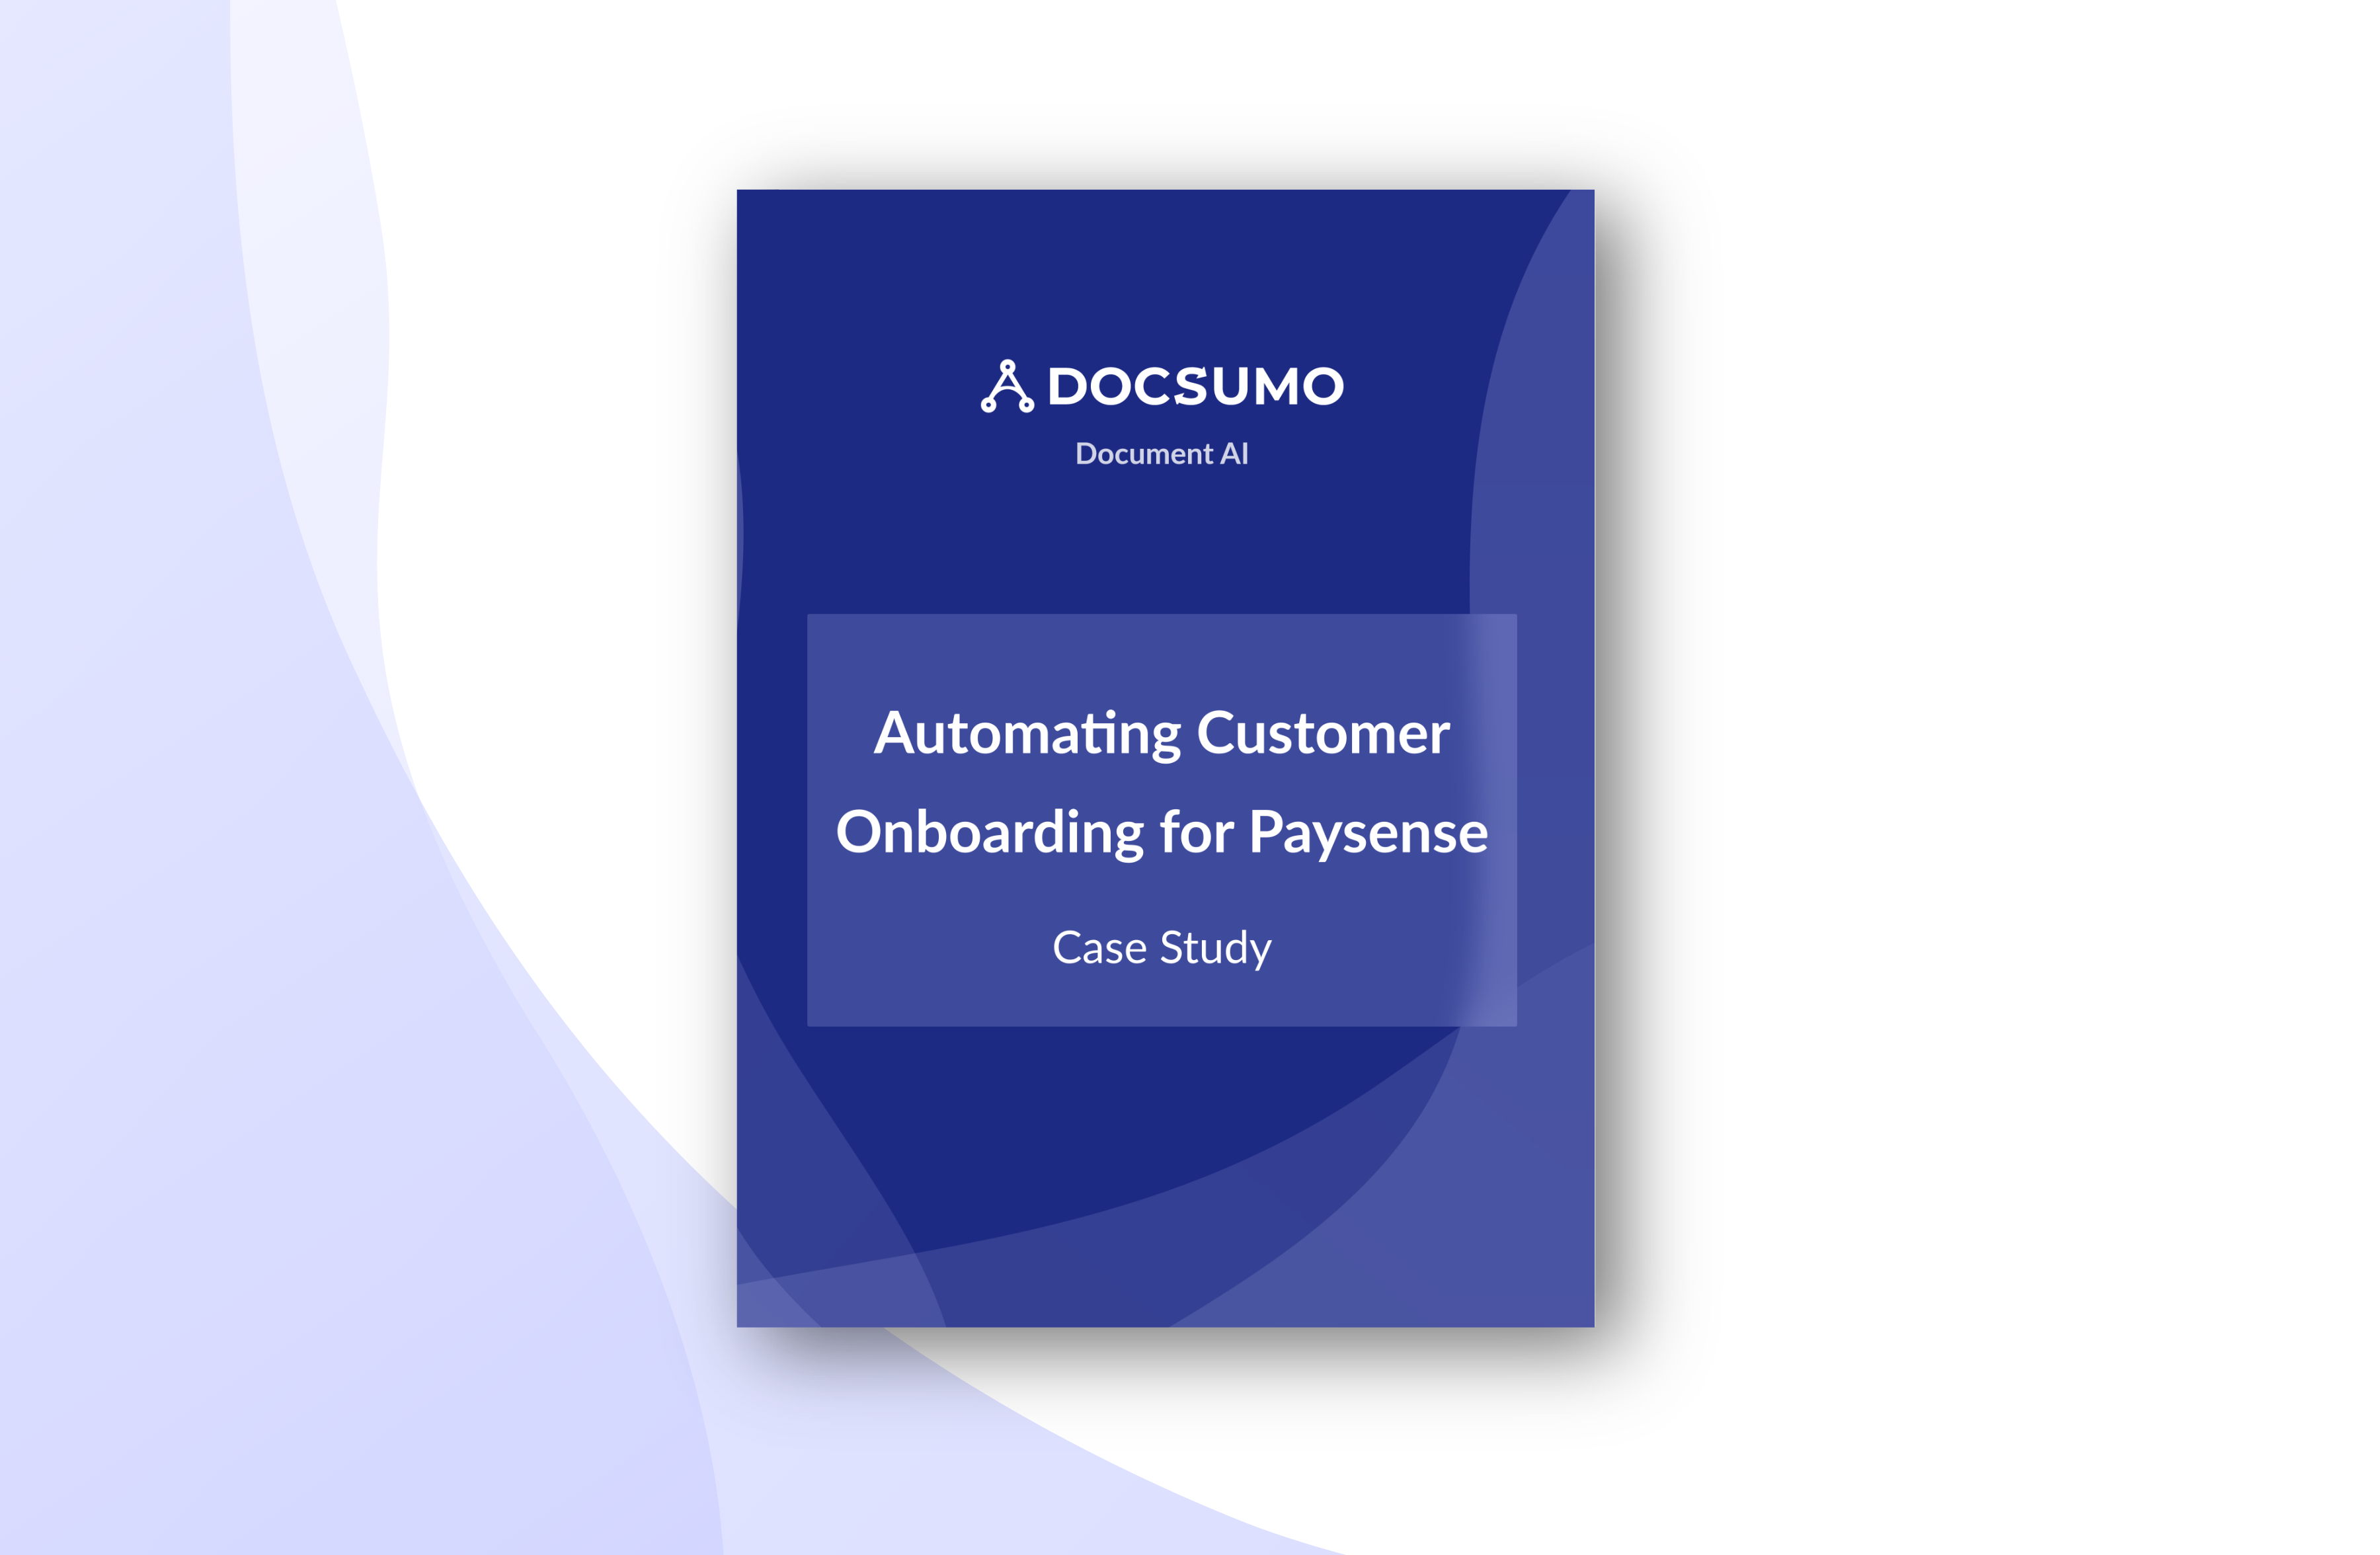 Automating Customer Onboarding for PaySense